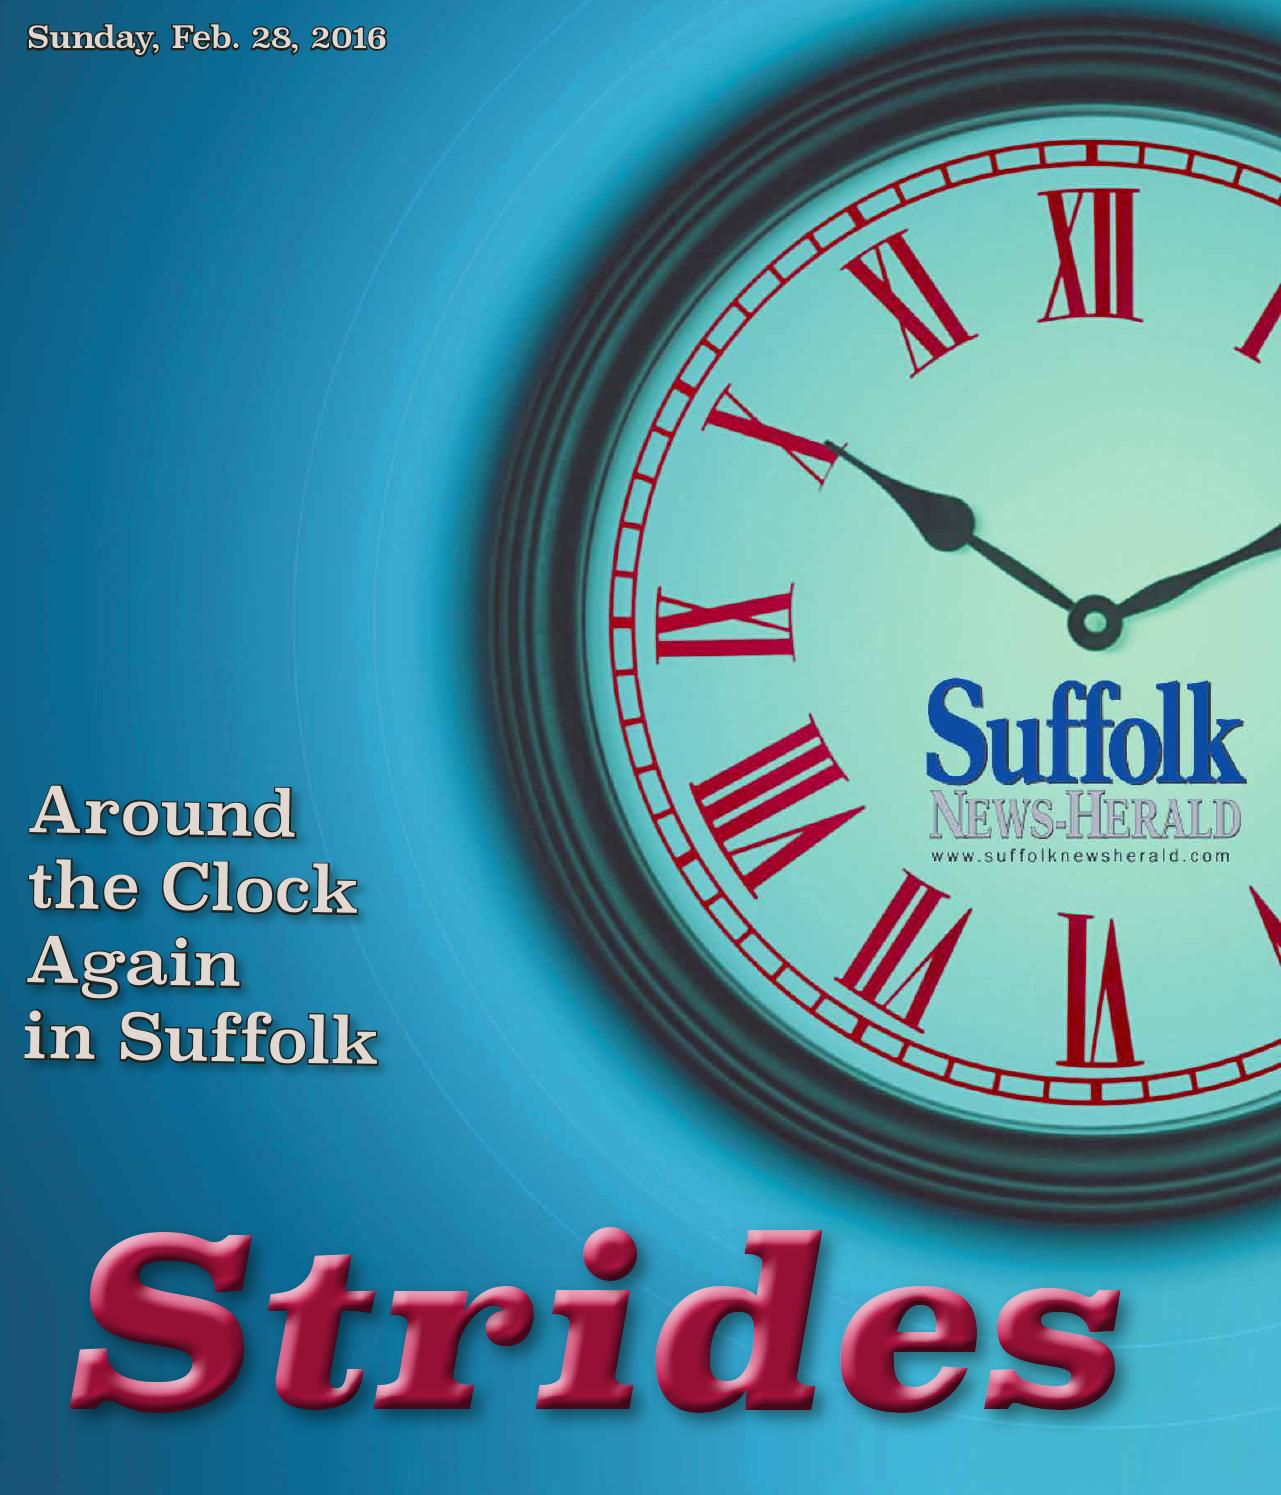 Strides 2016 by Suffolk News-Herald - issuu